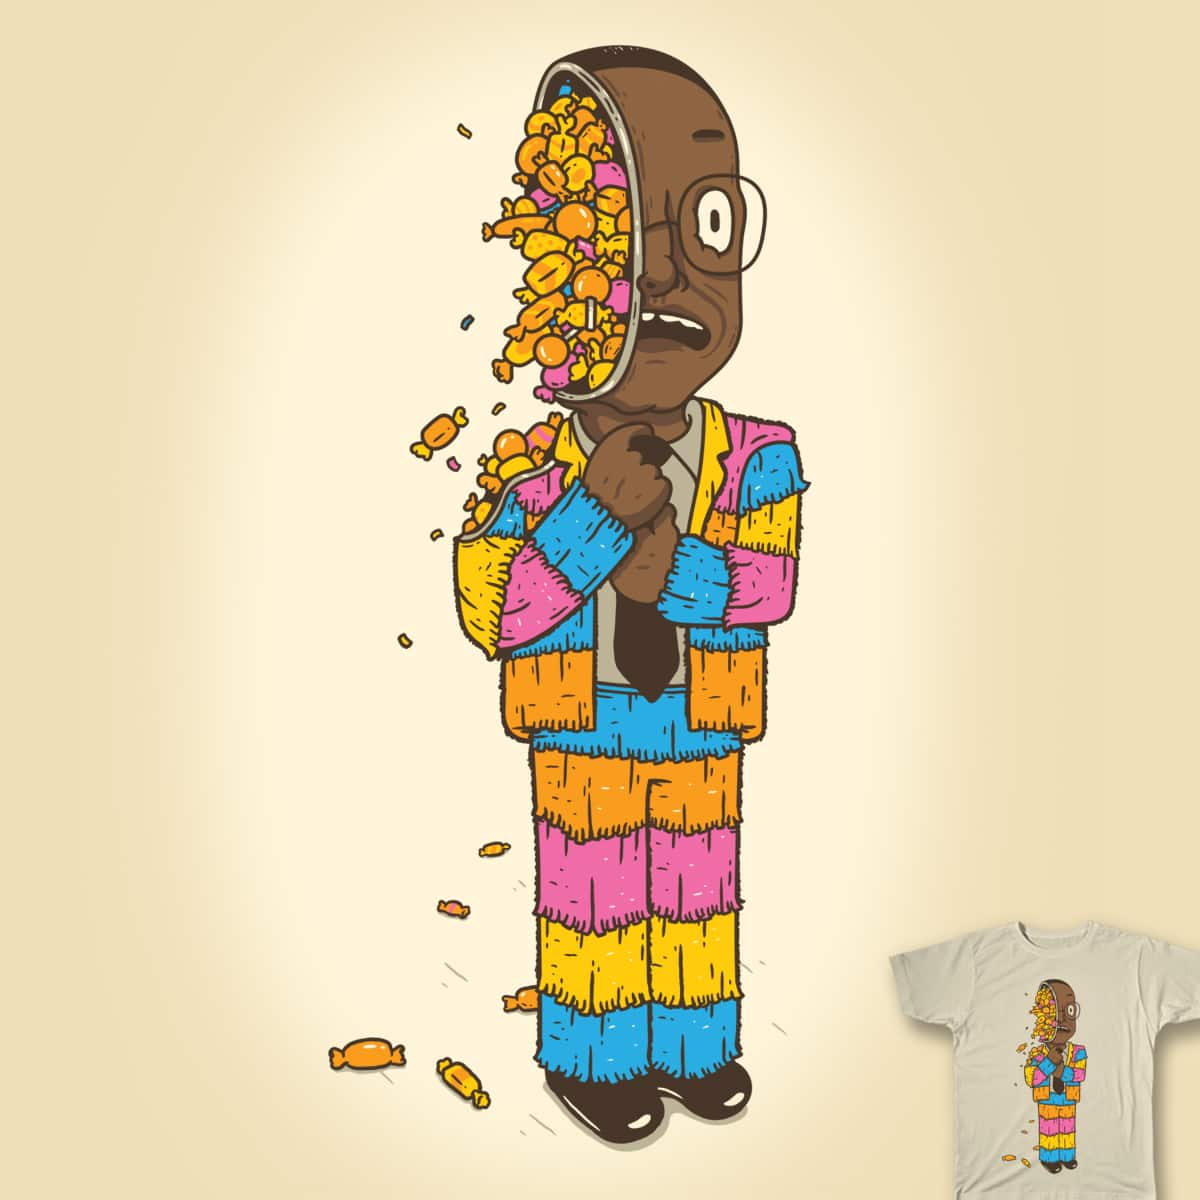 Guts of Gus by zayedforsale on Threadless